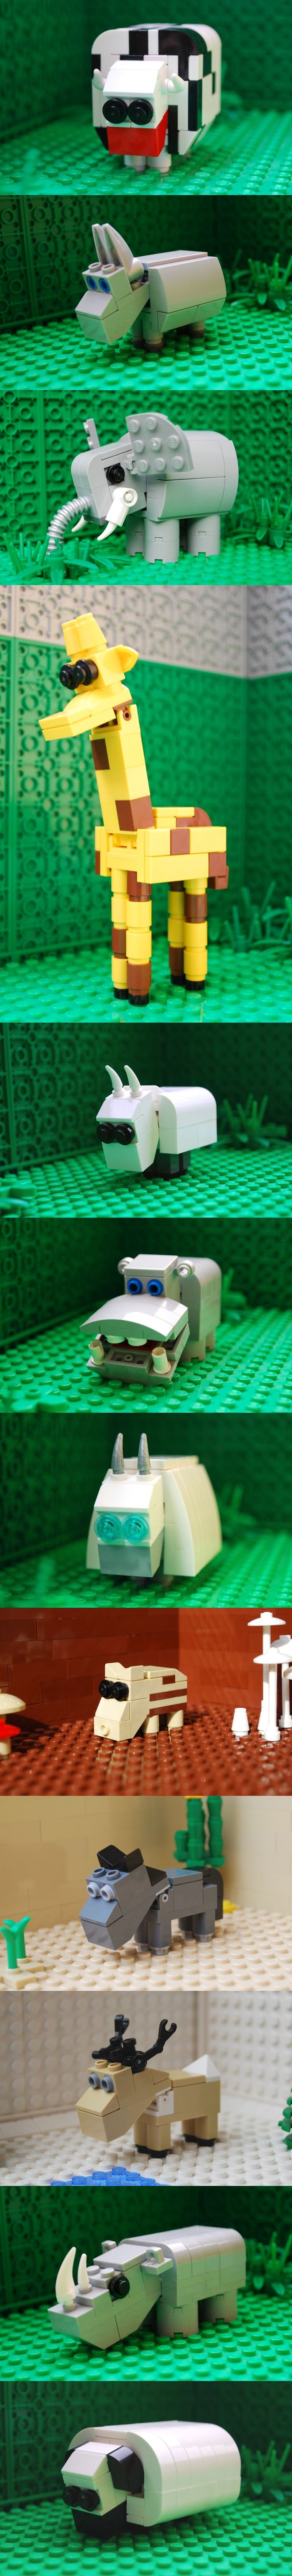 LEGO Animals: cow, donkey, elephant, giraffe, goat, hippo, mountain-goat, piglet, pony, reindeer, rhino, sheep #LEGO